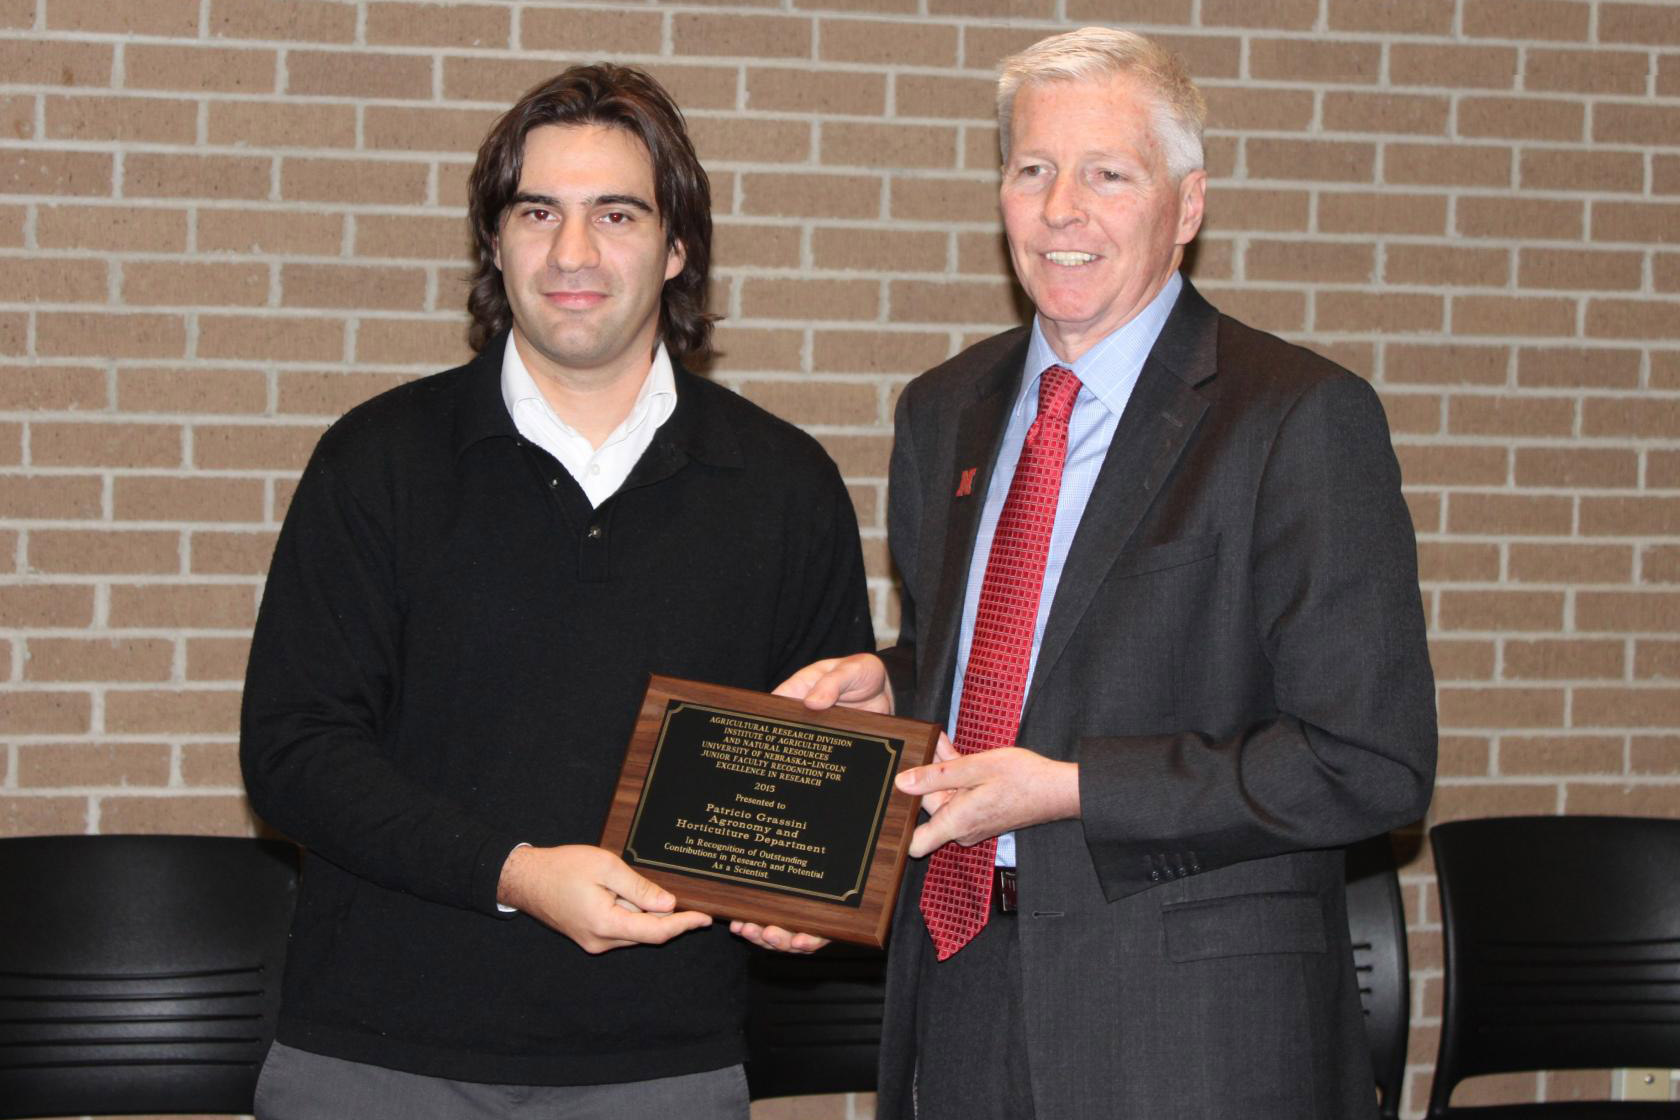 Grassini (left) honored with the Junior Faculty for Excellence in Research Award given by ARD Dean Archie Clutter.